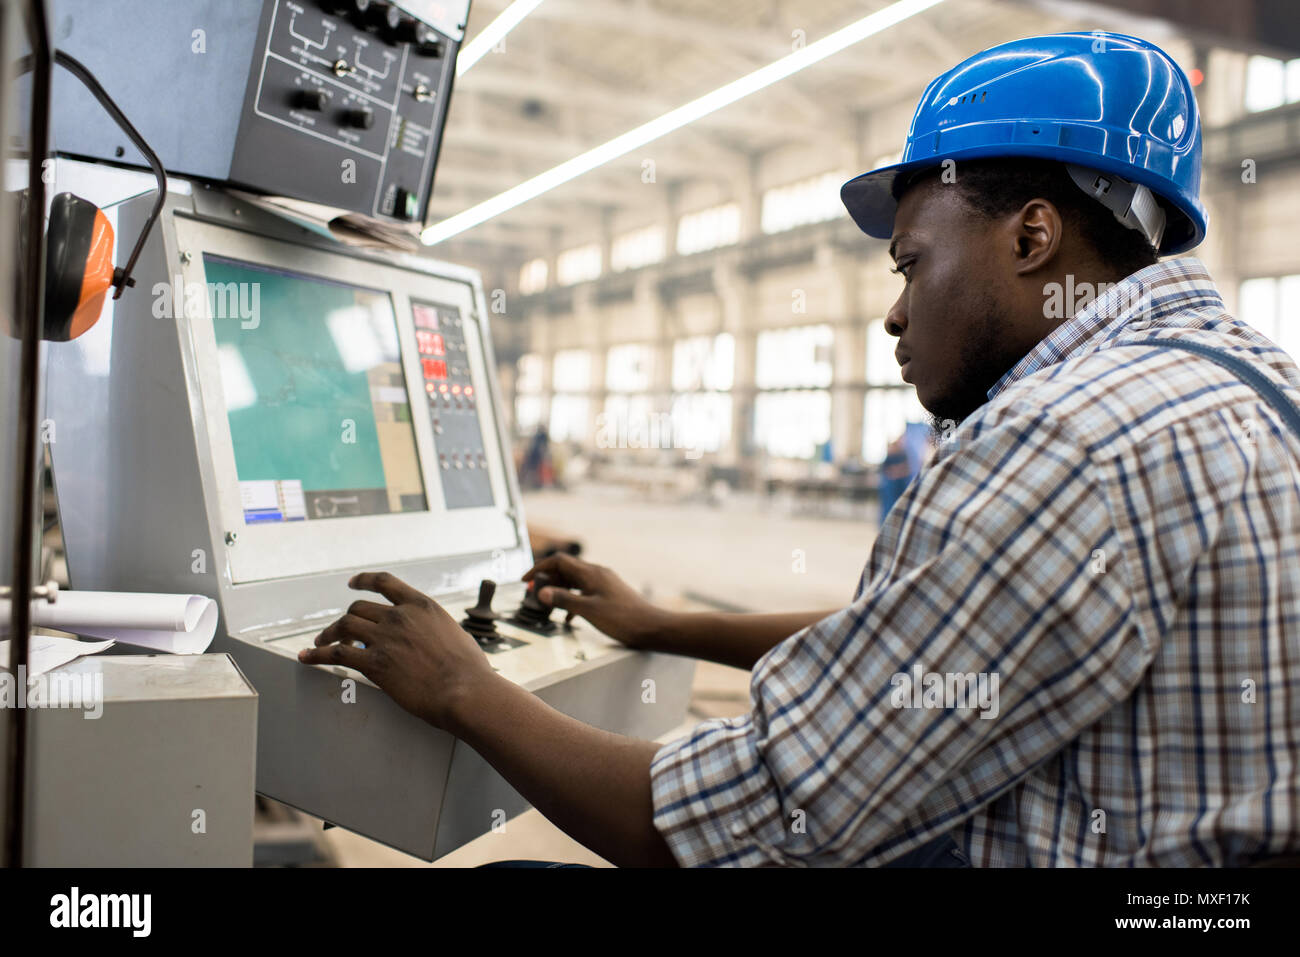 Machine Operator Focused on Work - Stock Image